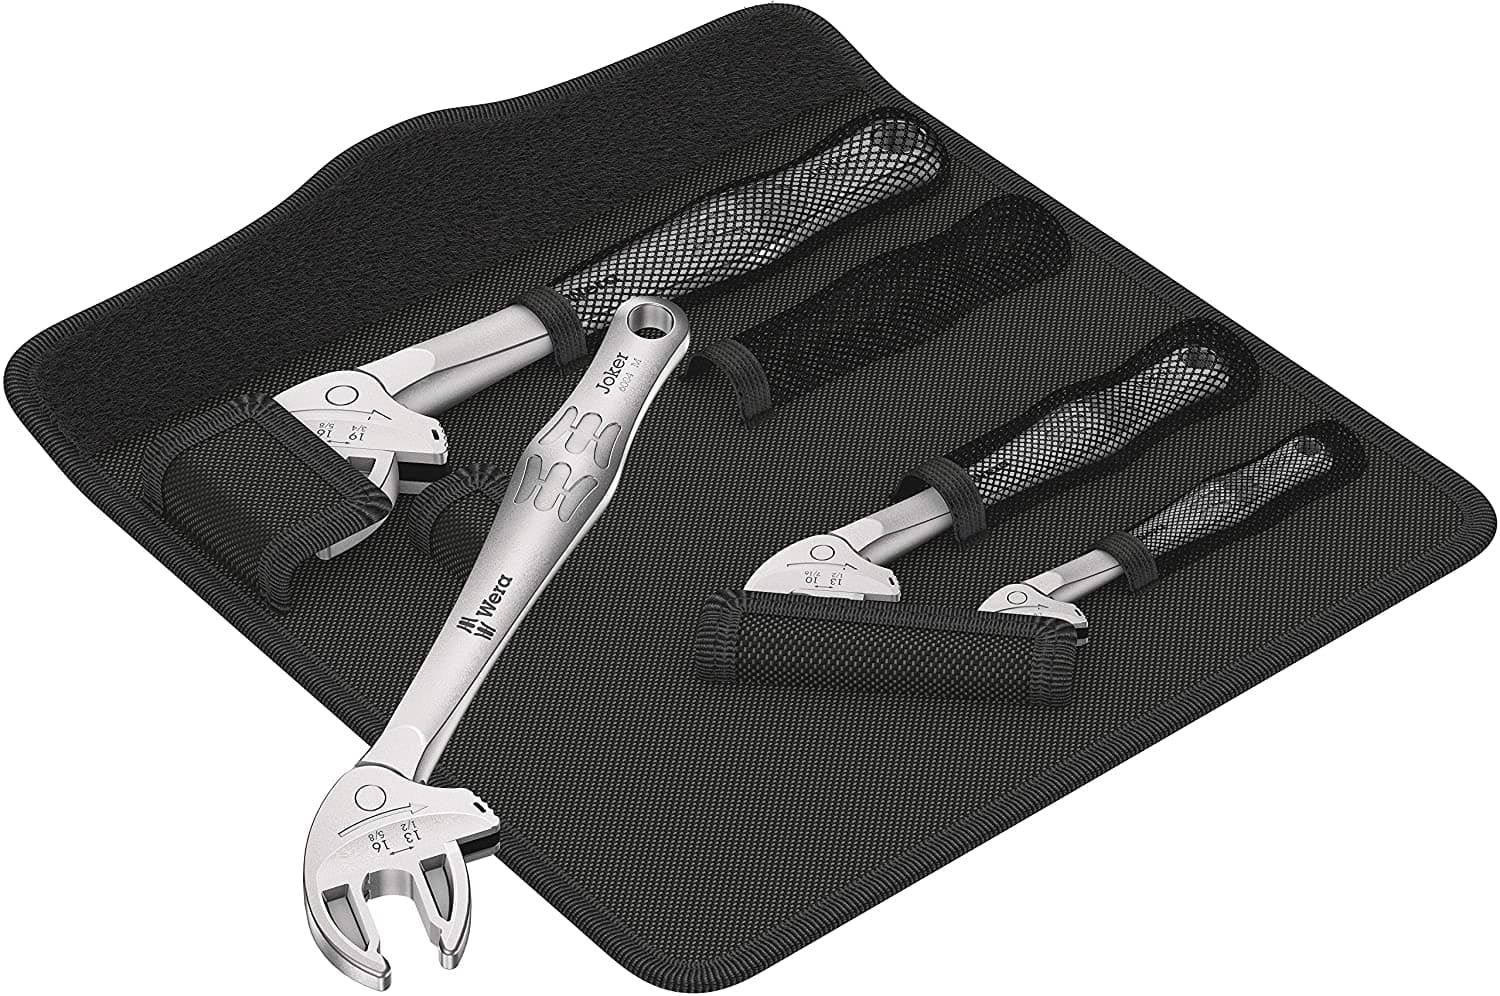 Wera 05020110001 6004 Joker 4 Set 1 self-Setting Spanner Set, 4 Pieces: Amazon.com: Industrial & Scientific $143.67